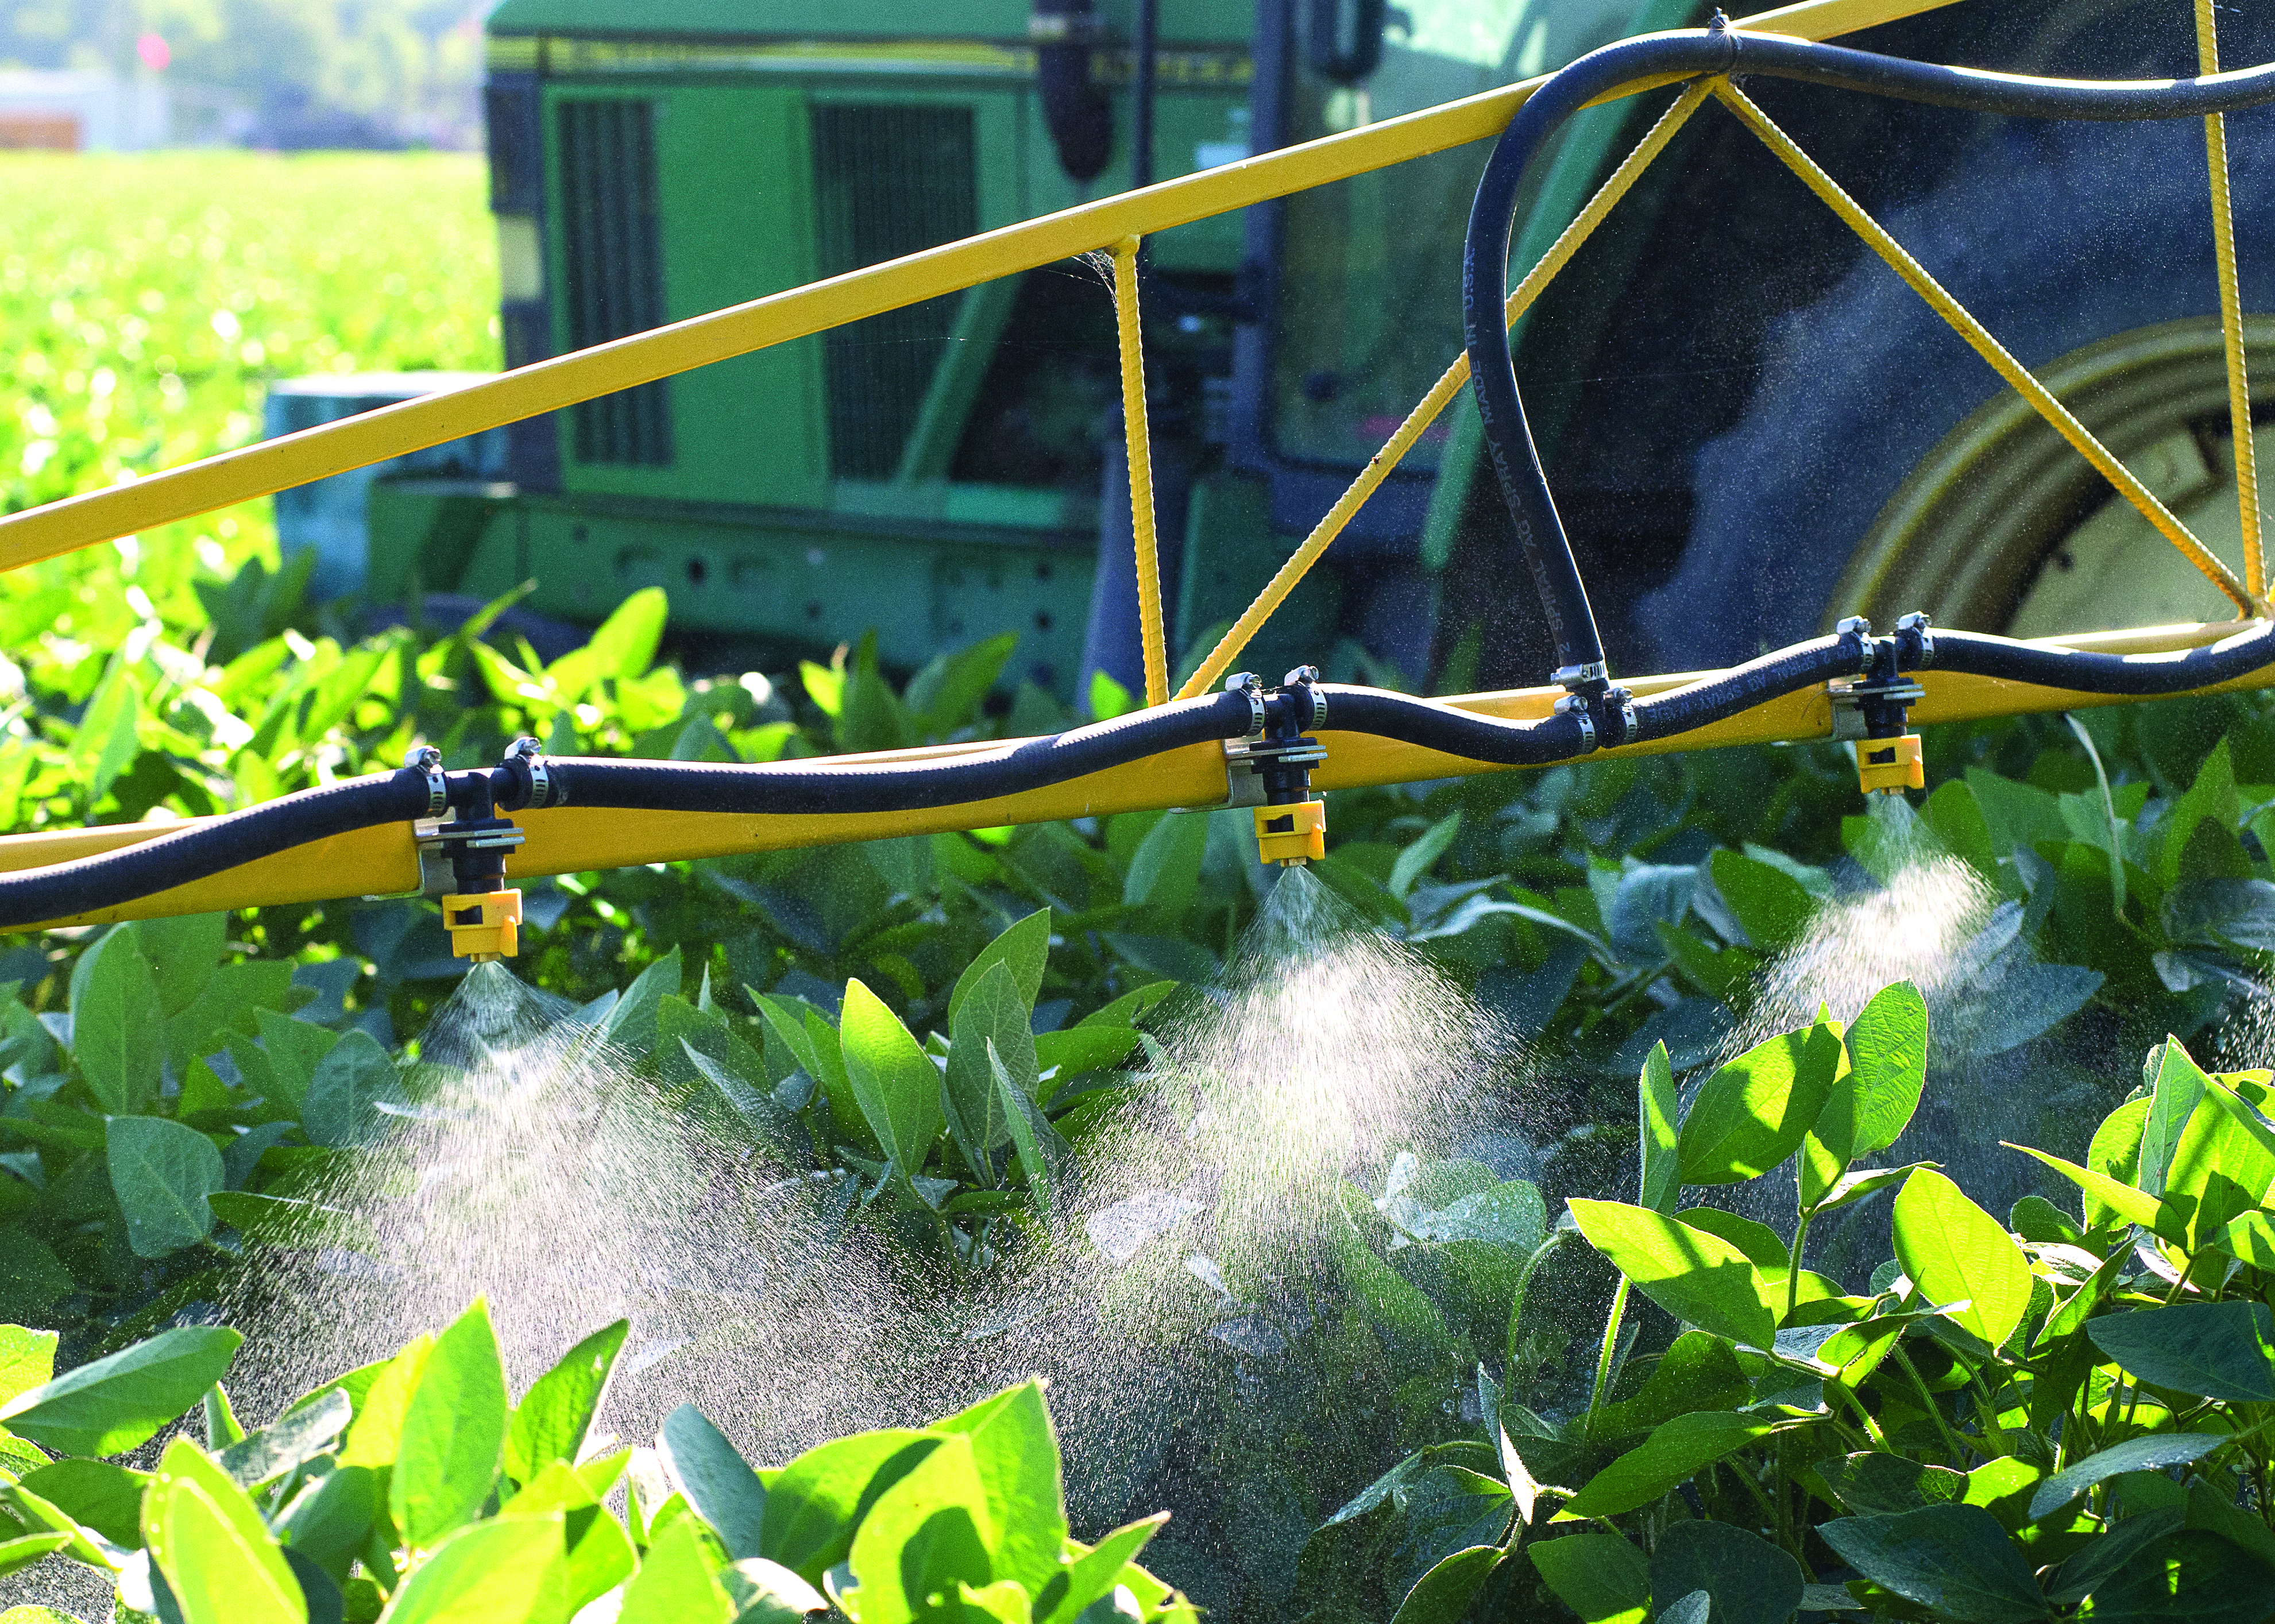 Herbicide task force stresses education for weed control, crop protection